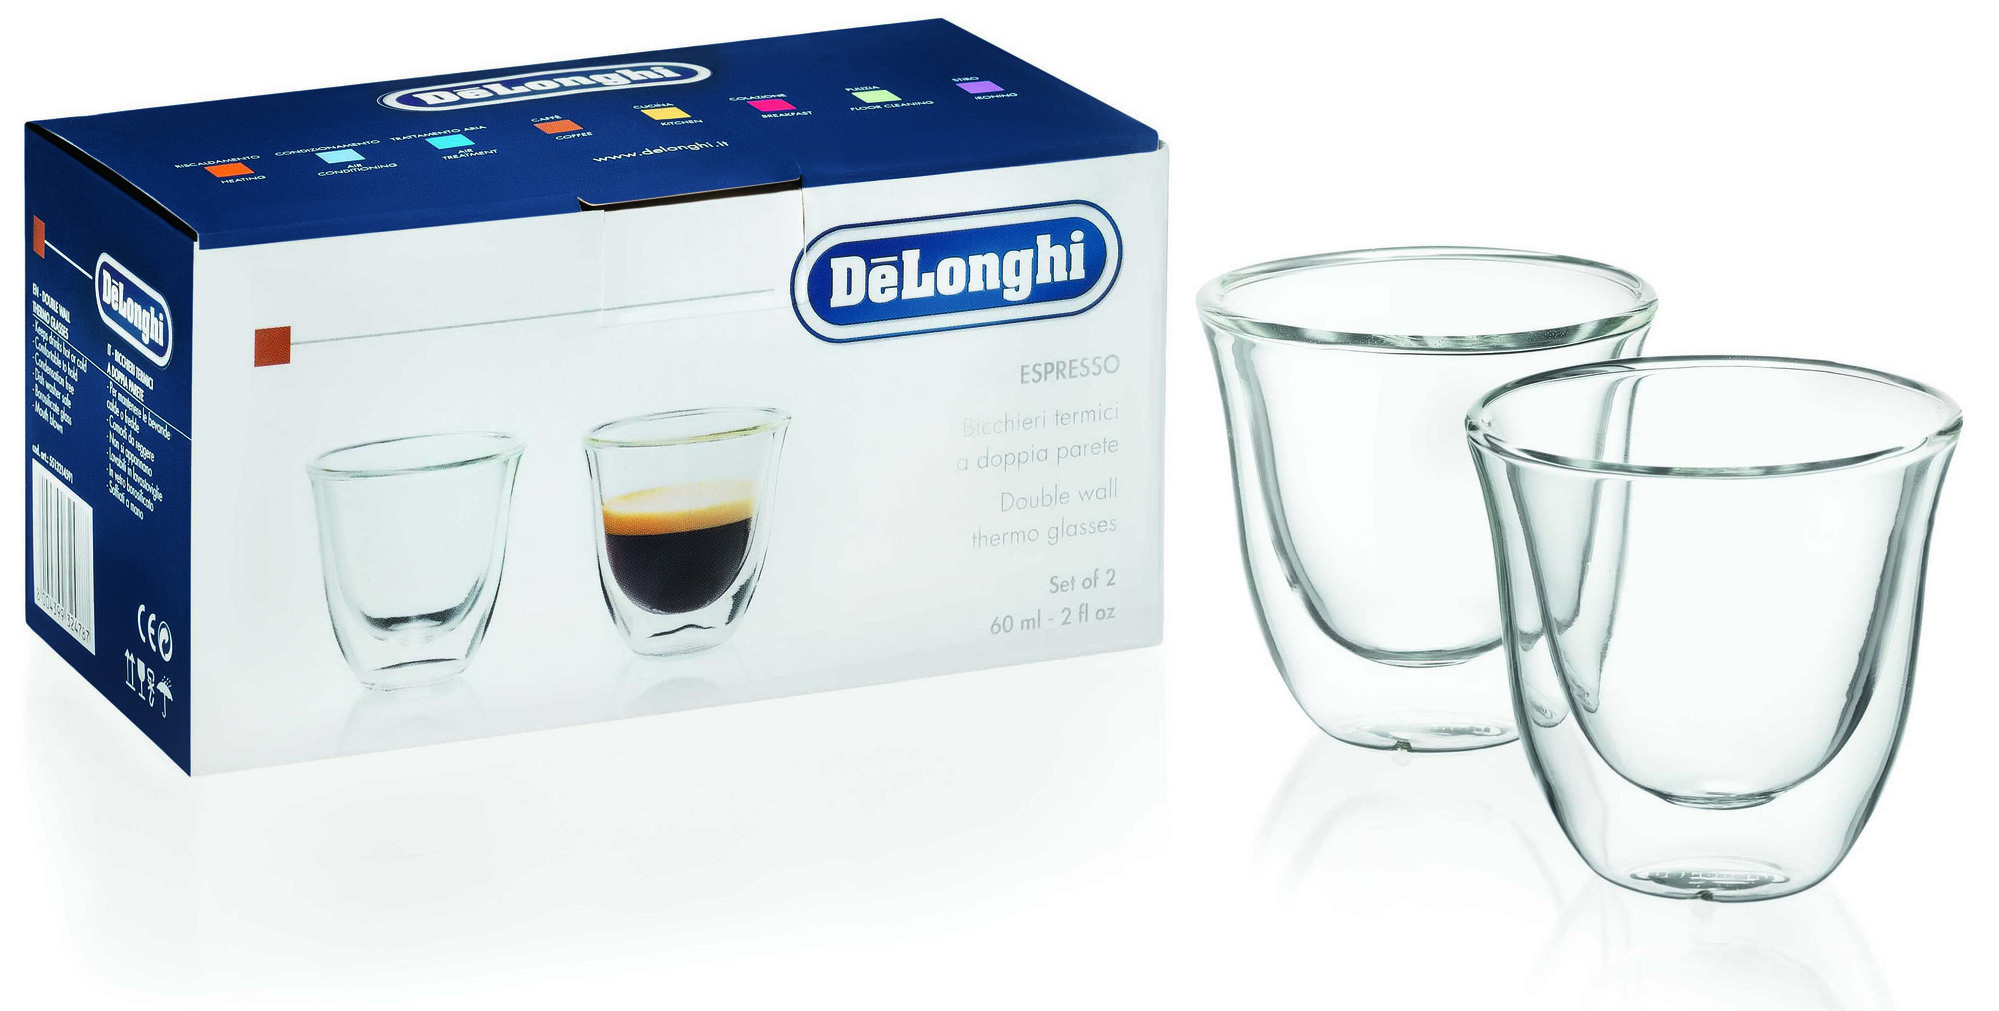 two espresso cups placed beside a box